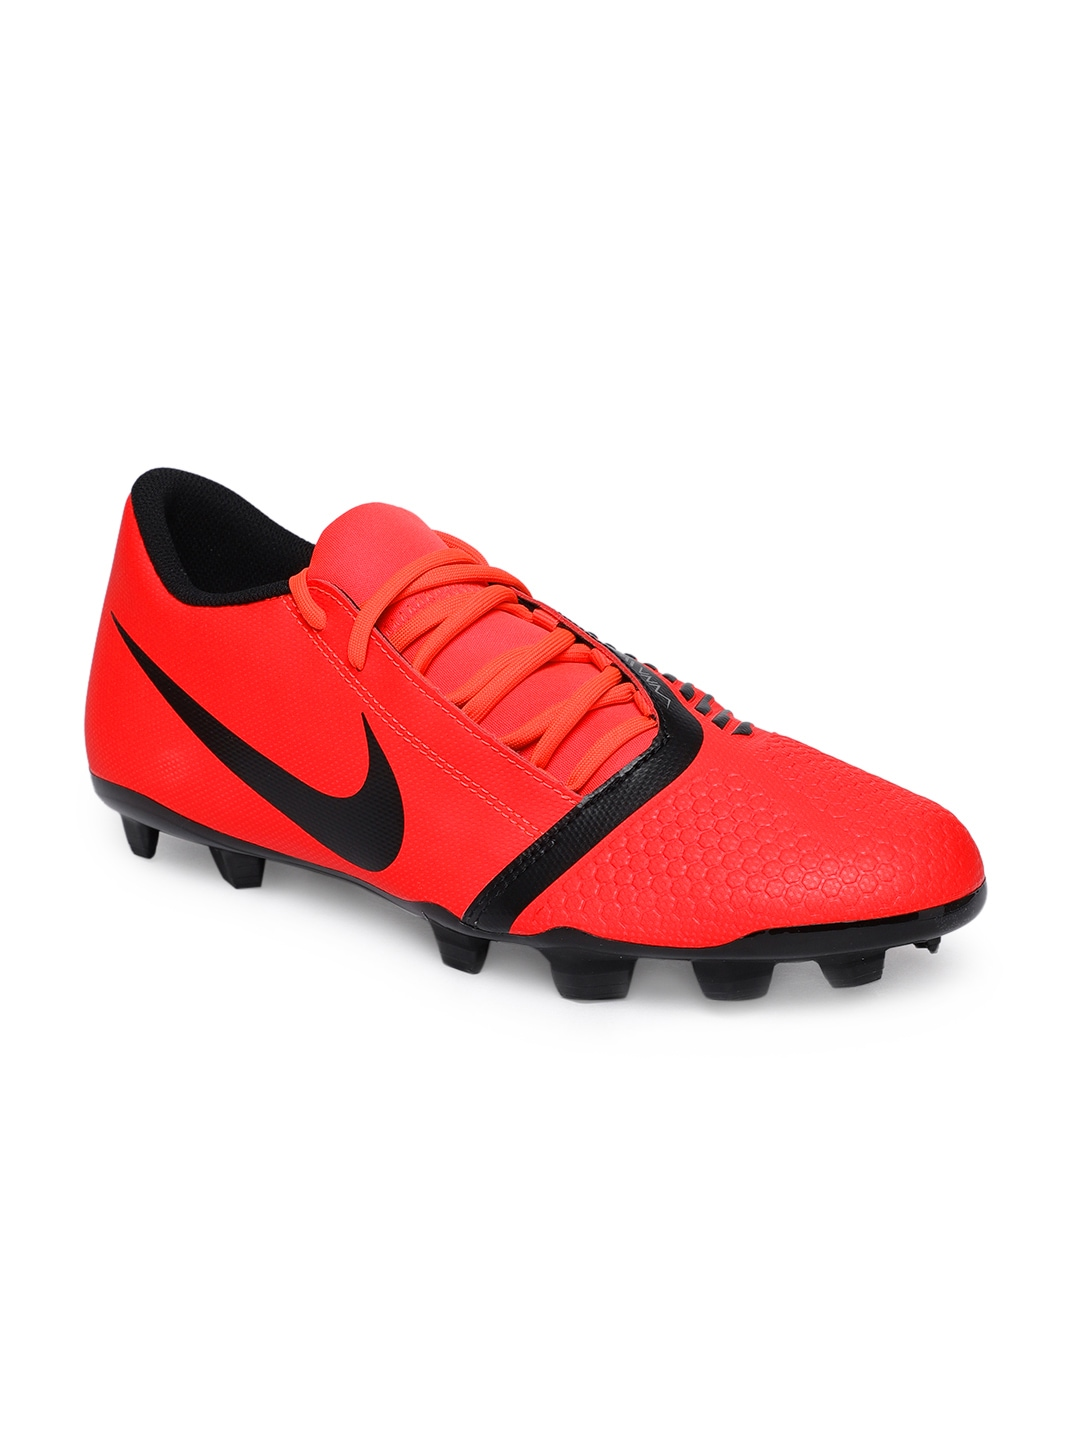 c31ace8db4c Nike Sport Shoe - Buy Nike Sport Shoes At Best Price Online